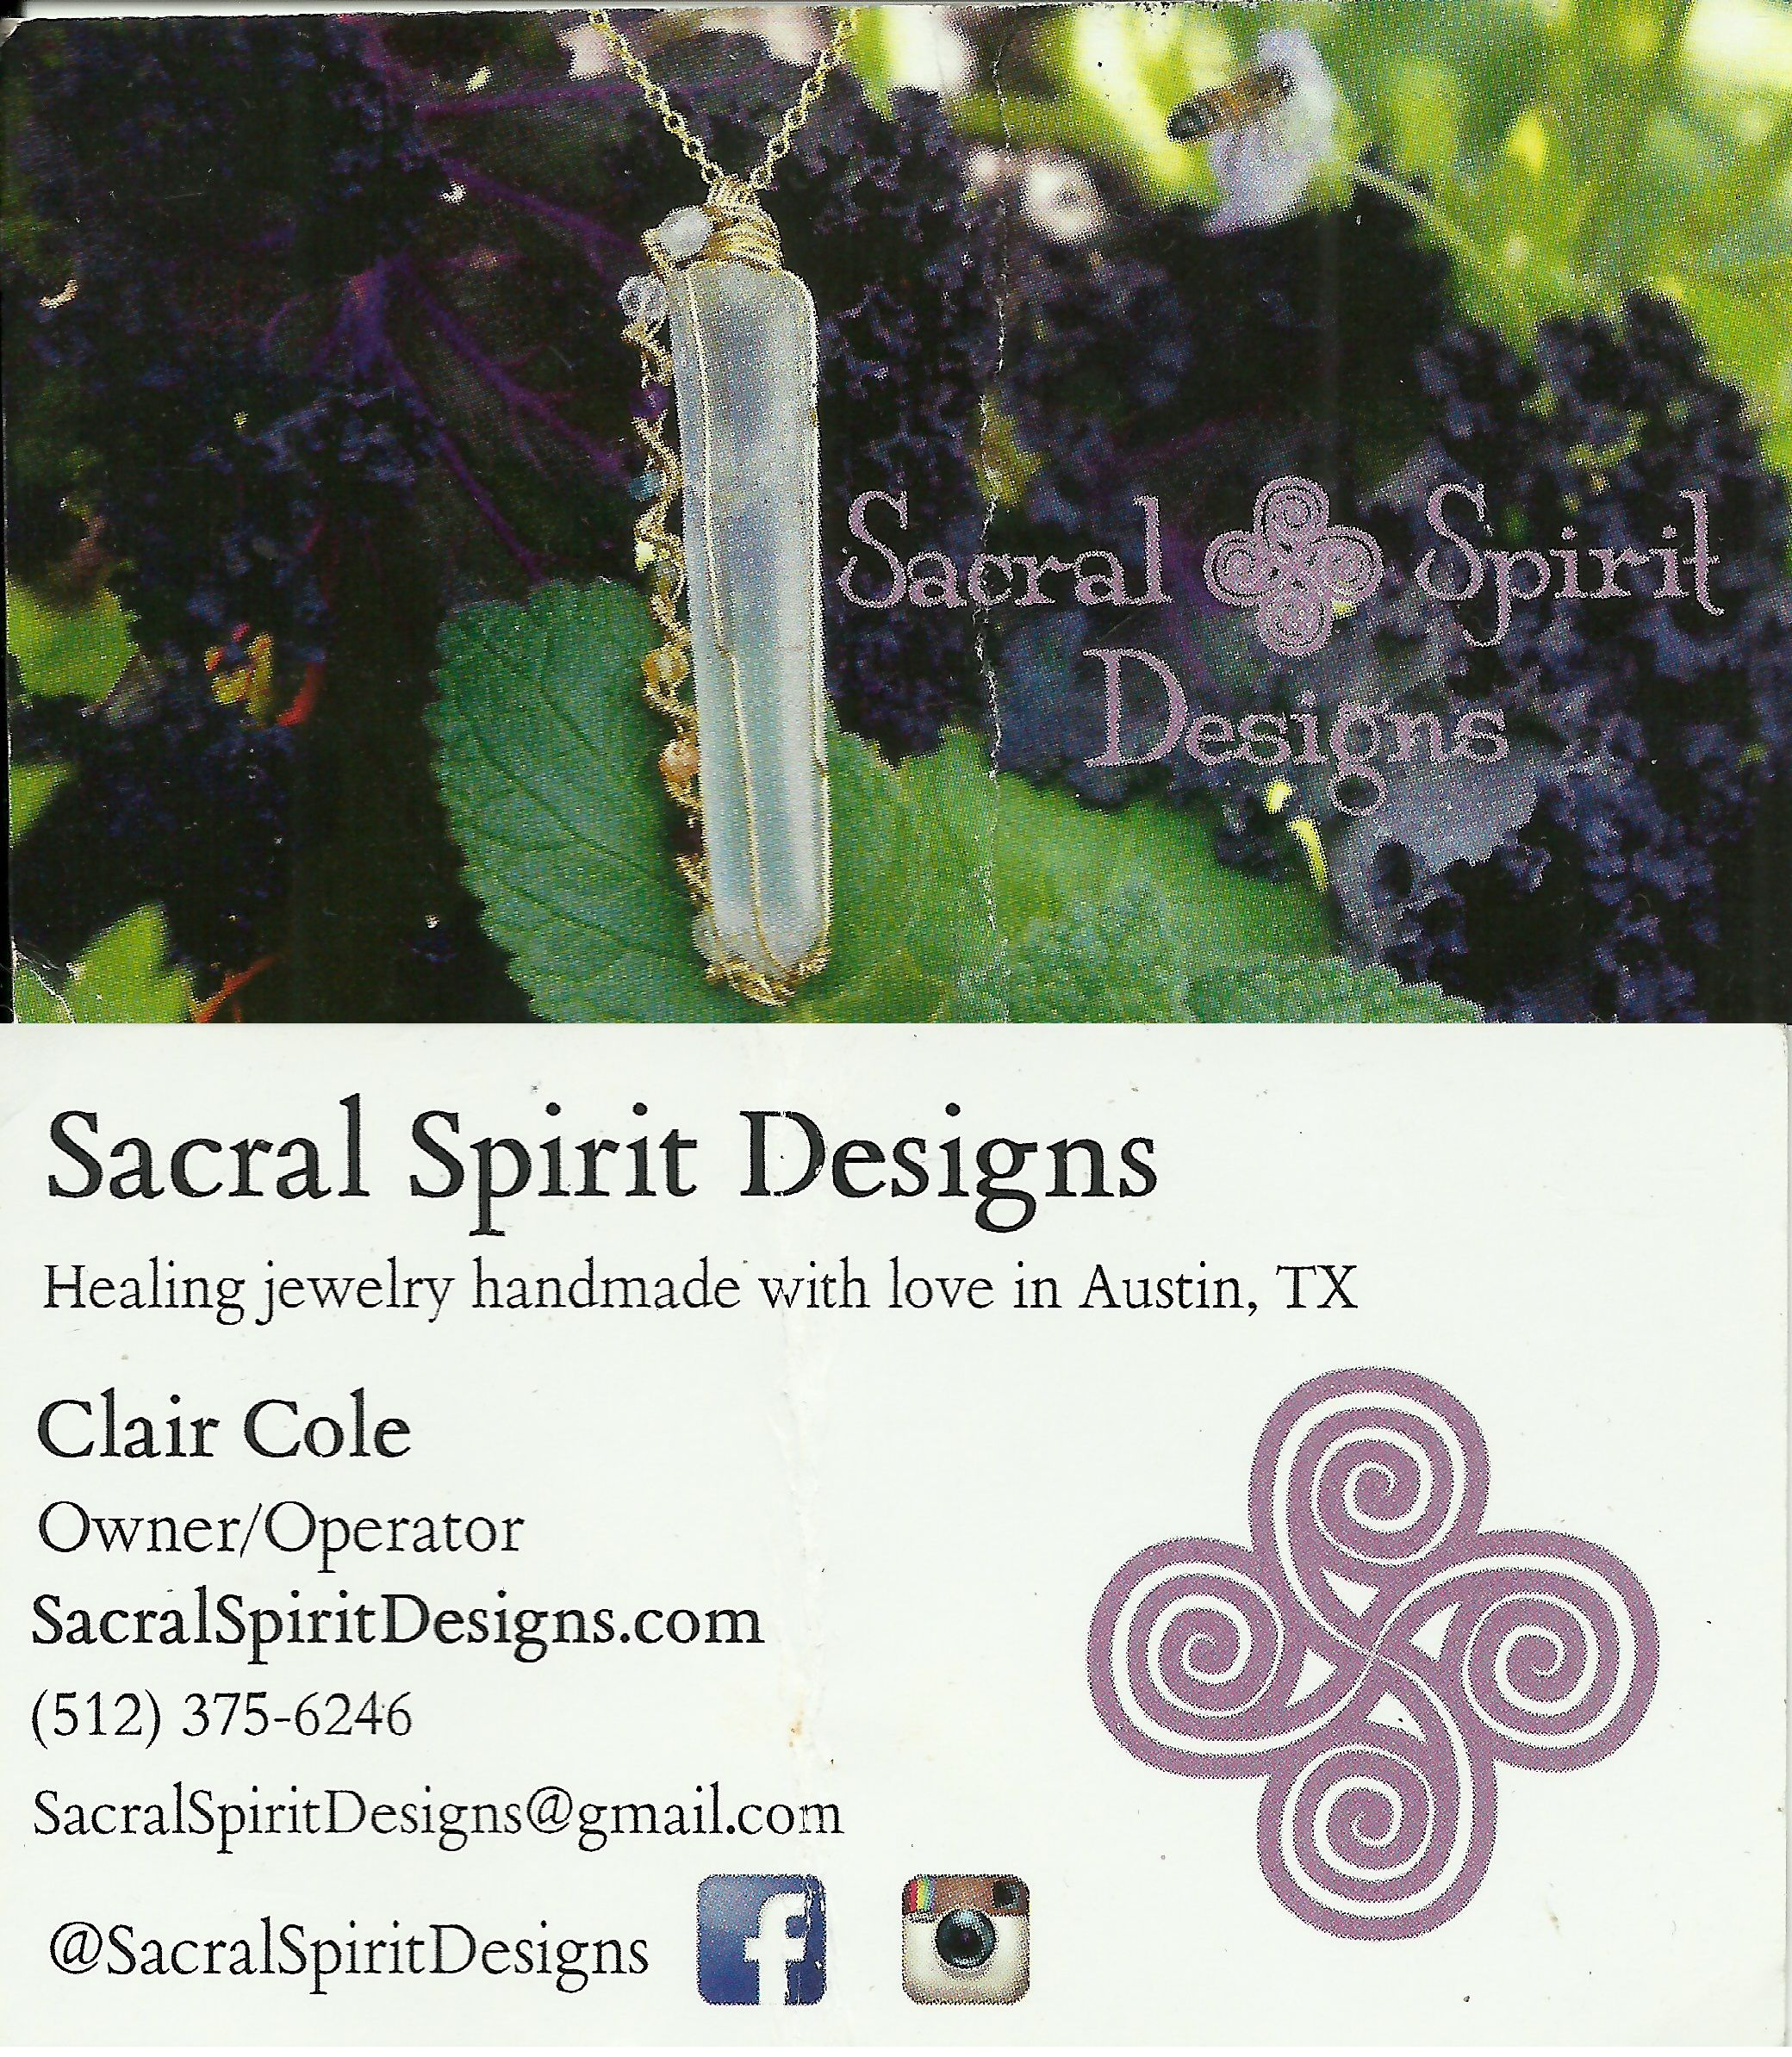 Sacral Spirit Designs Healing Jewelry handmade with love in